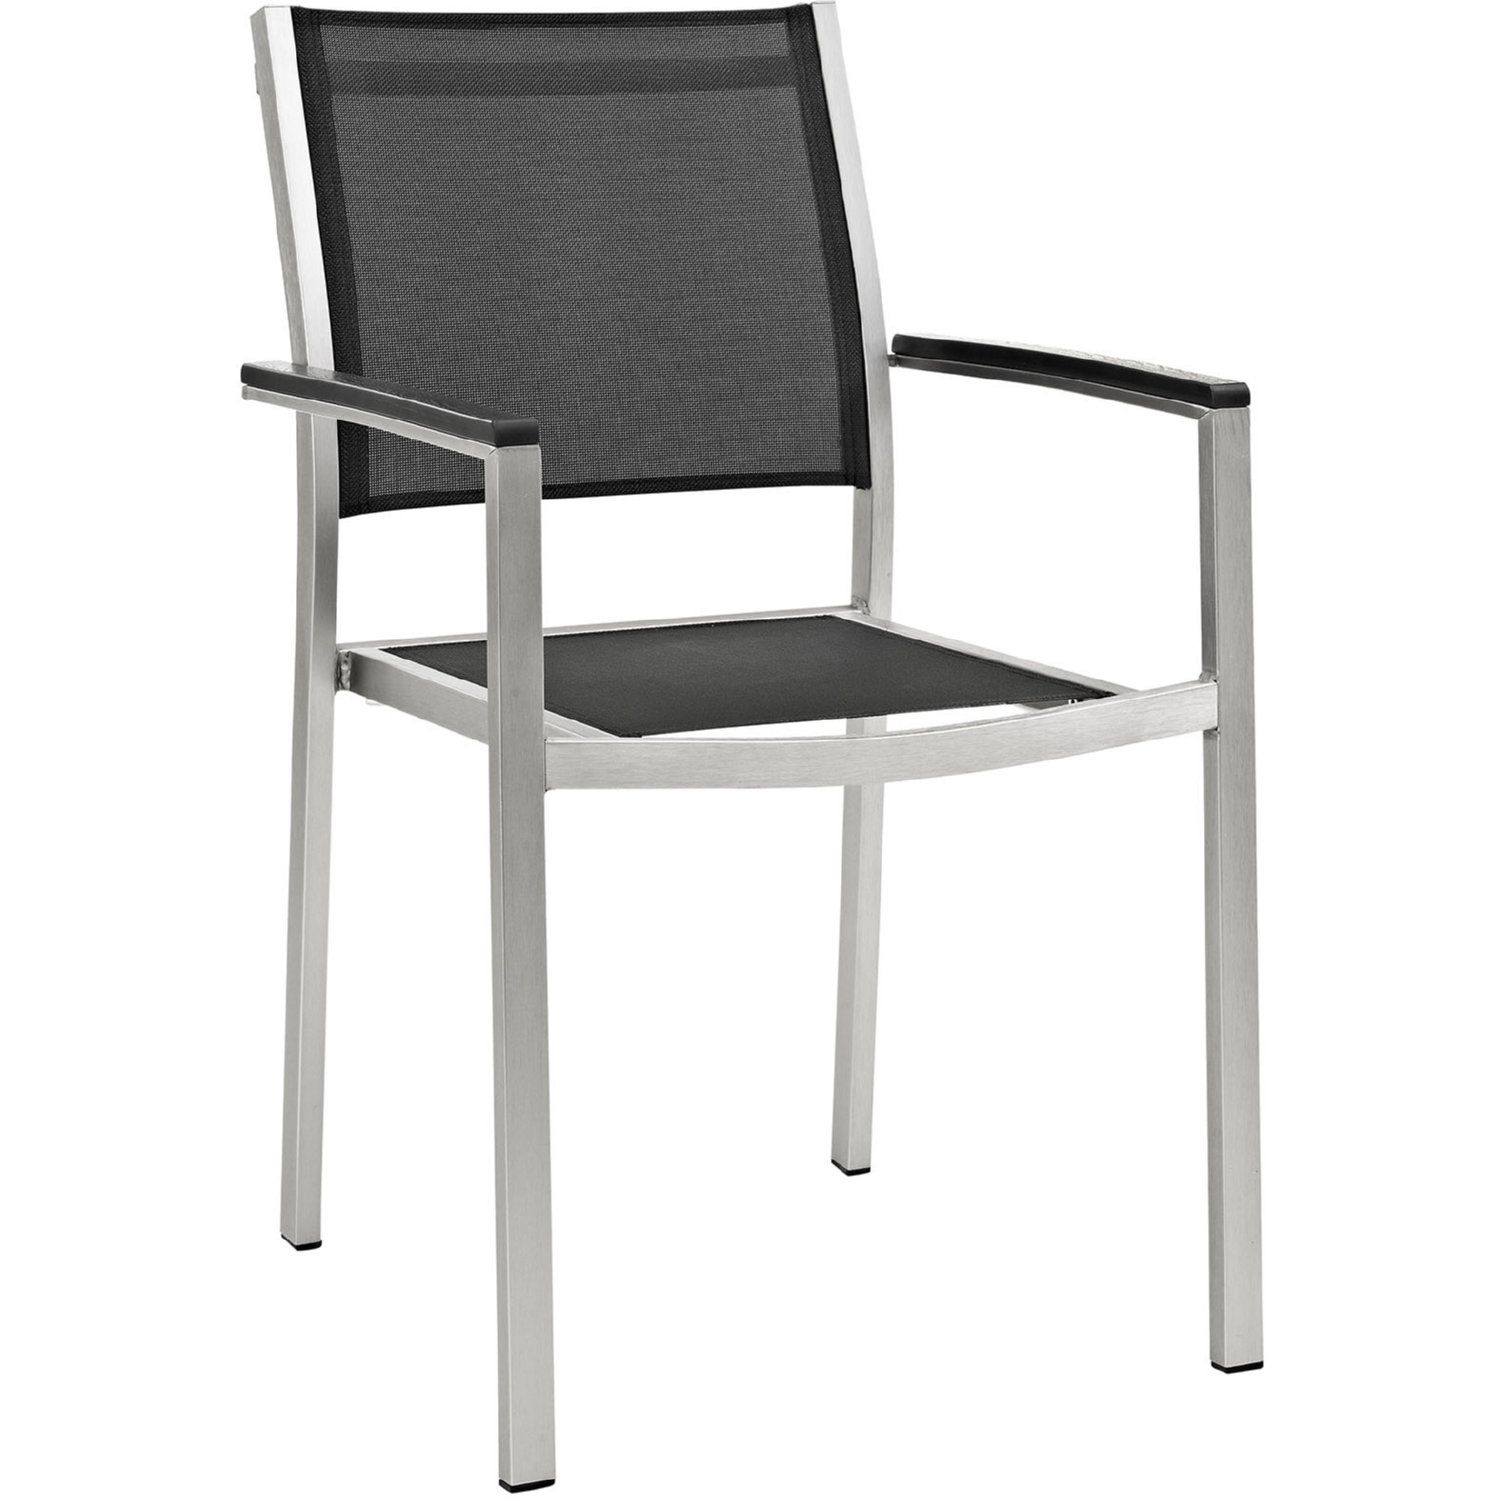 Modway Shore Outdoor Aluminum Dining Chair Brushed Silver Black